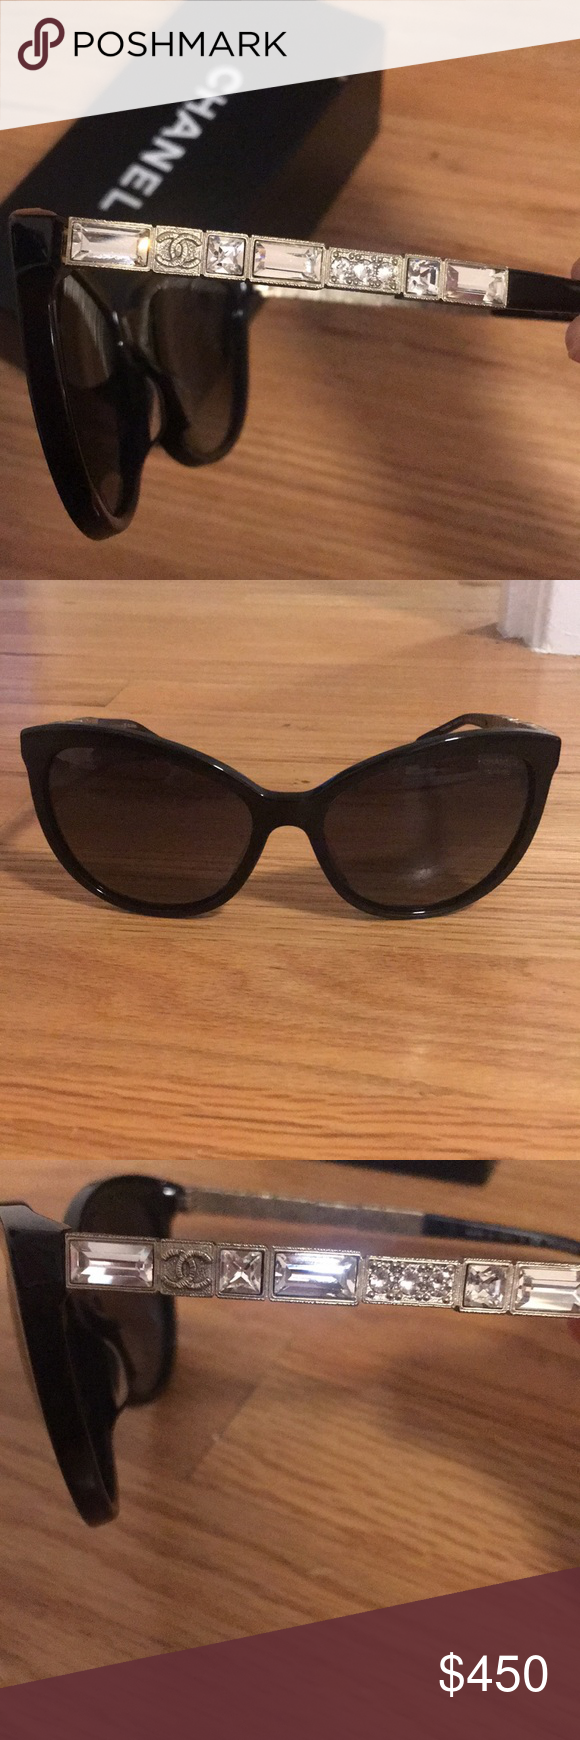 0fcfd0ba7d54b Authentic Chanel sunglasses with crystal sides Authentic polarized black  frames with crystal siding